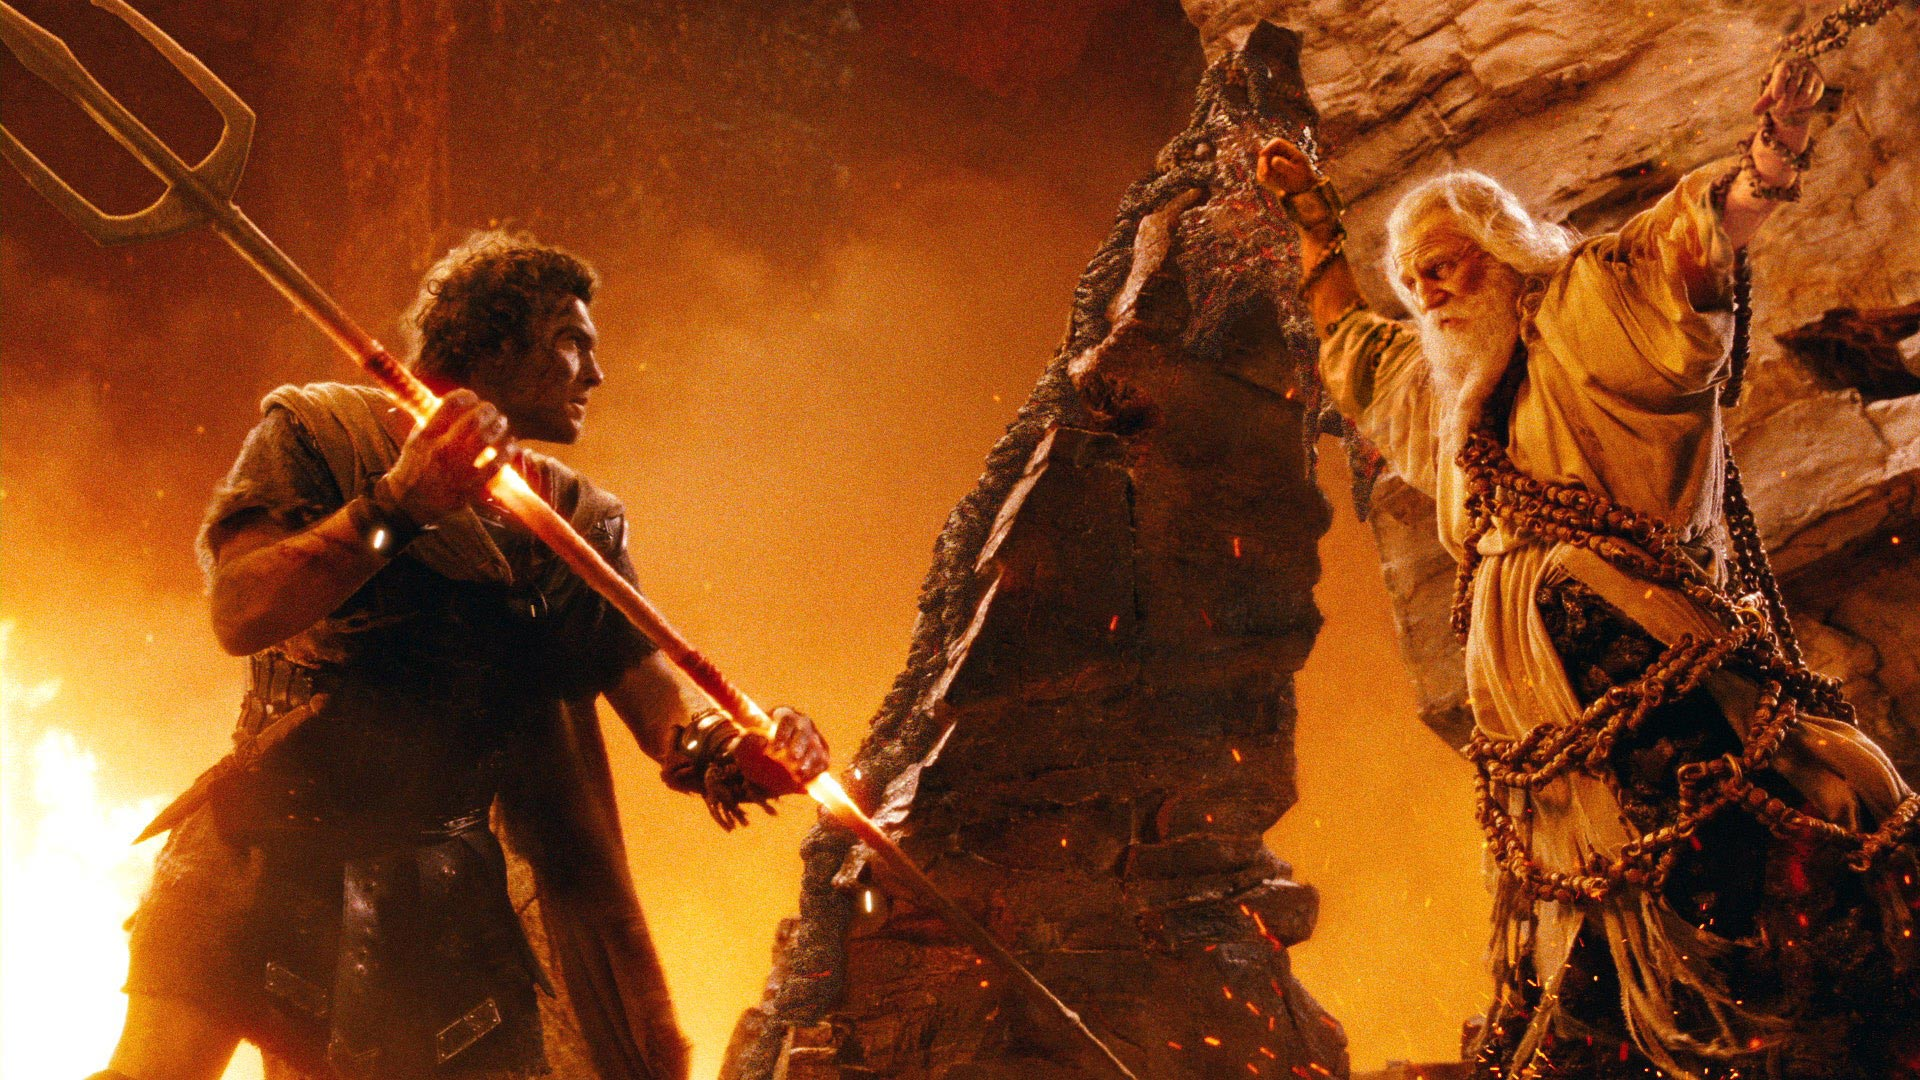 Wrath Of The Titans Monsters Movie review: Wrath Of...